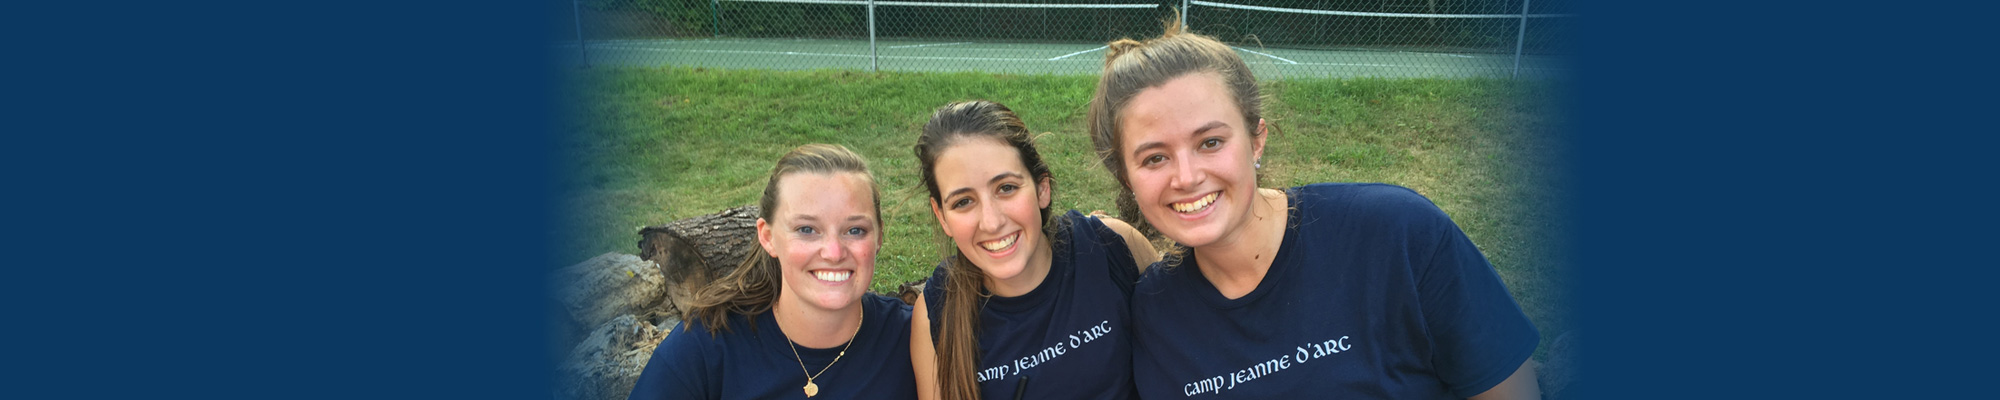 Camp Counselor at Camp Jeanne d'Arc for Girls in Upstate New York